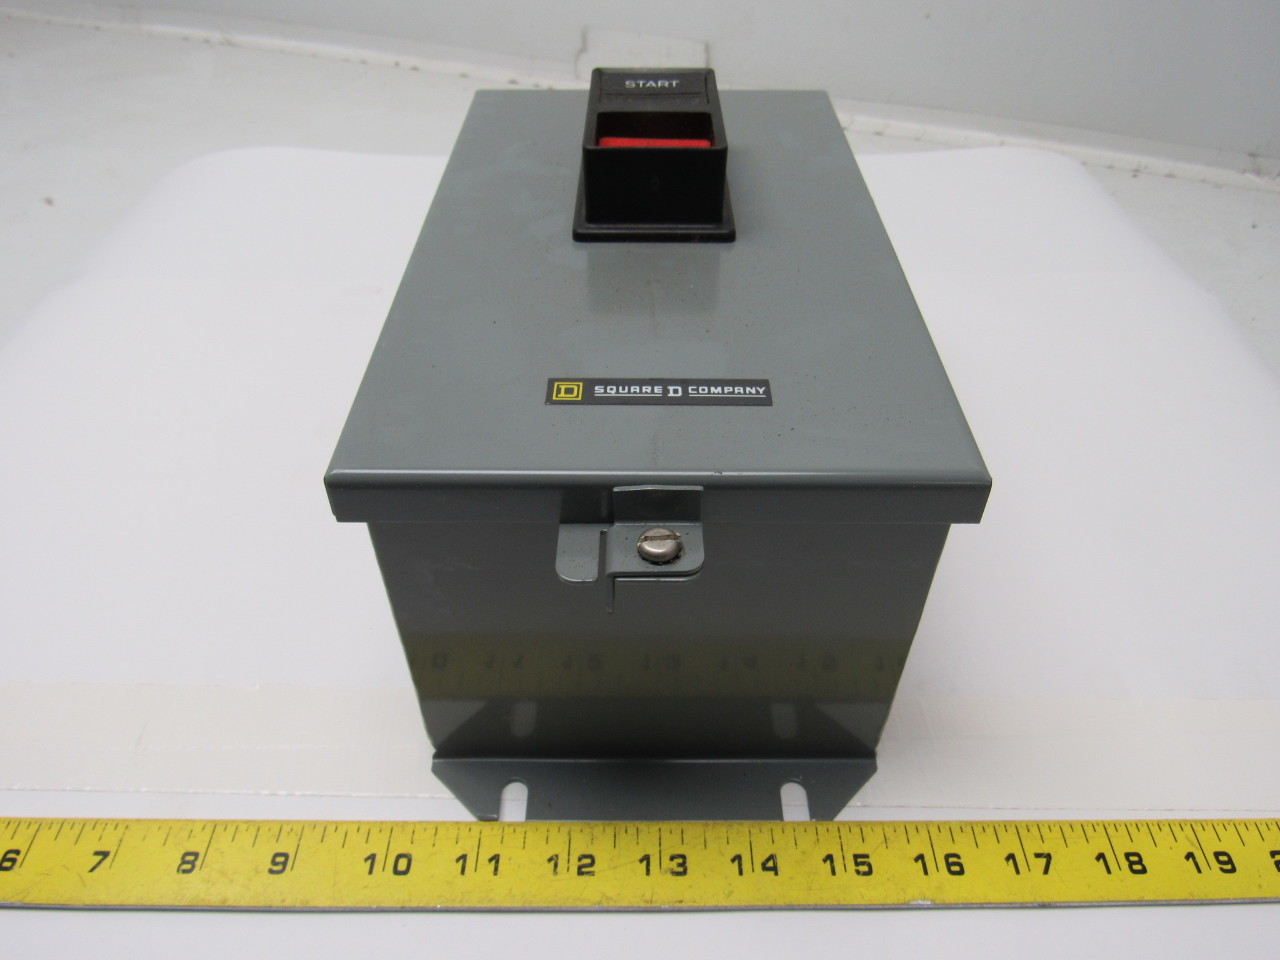 Square D 2510 MBA1 Series C AC Manual Starter Size M0 1 Phase 2 Pole